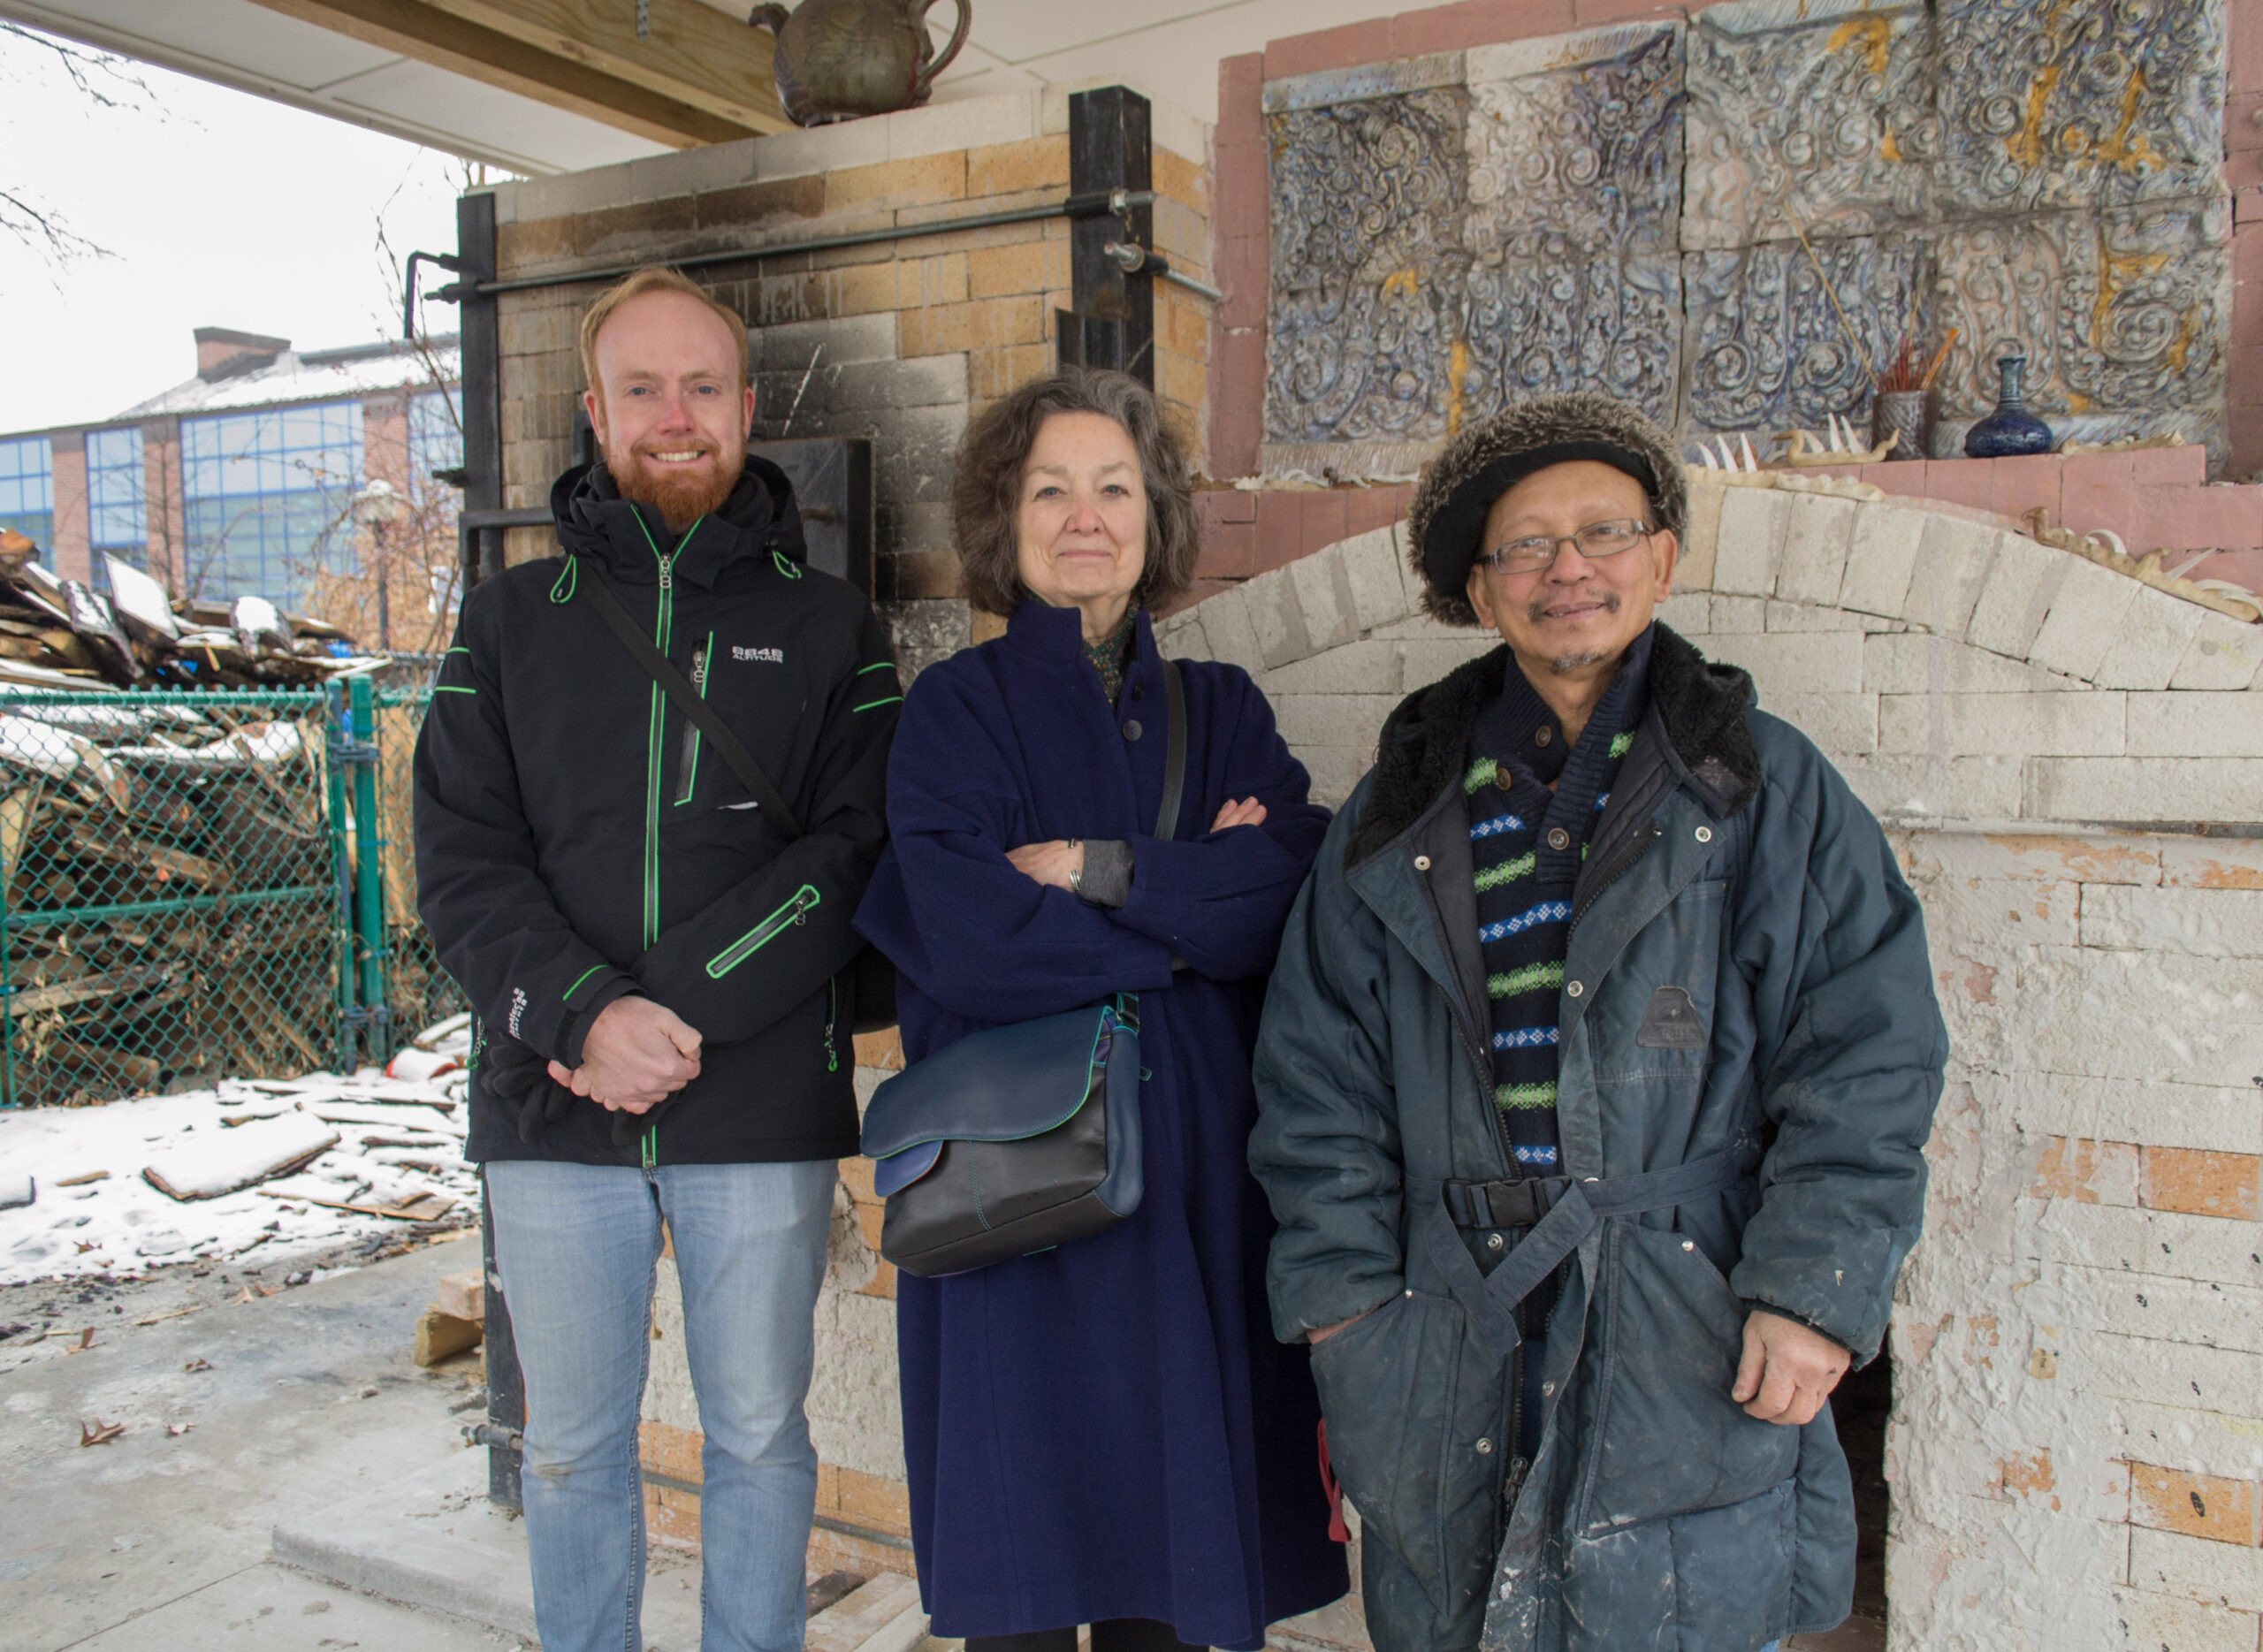 A visit to the kiln. Danny Eijsermans, Louise Cort, and Yary Livan.